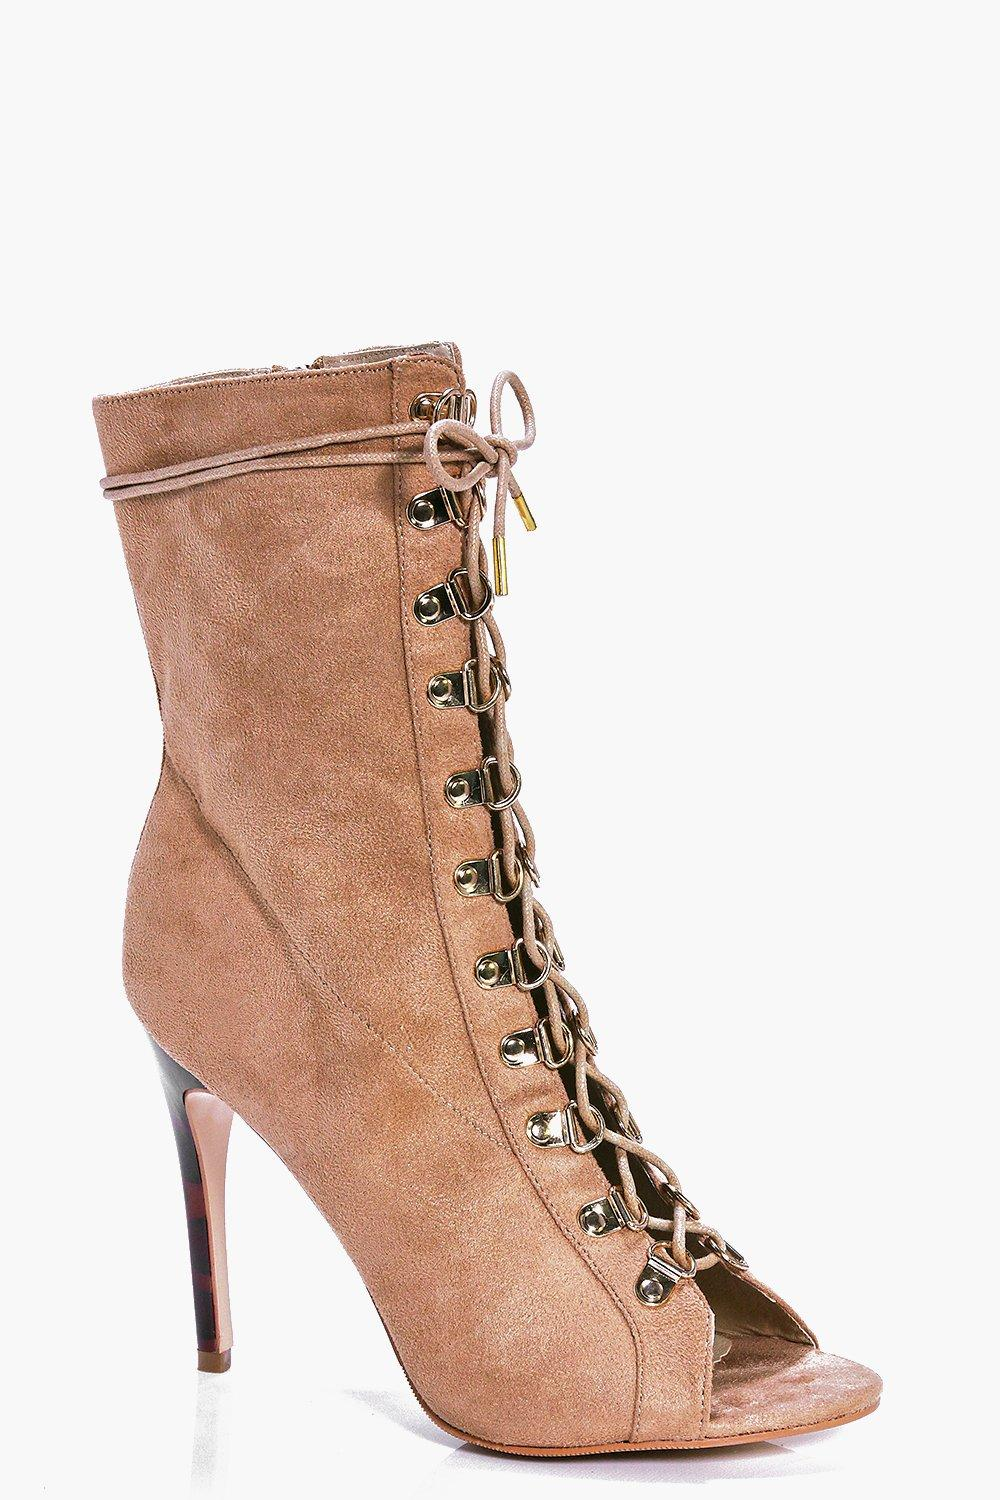 boohoo womens abbie high ankle lace up shoe boot ebay